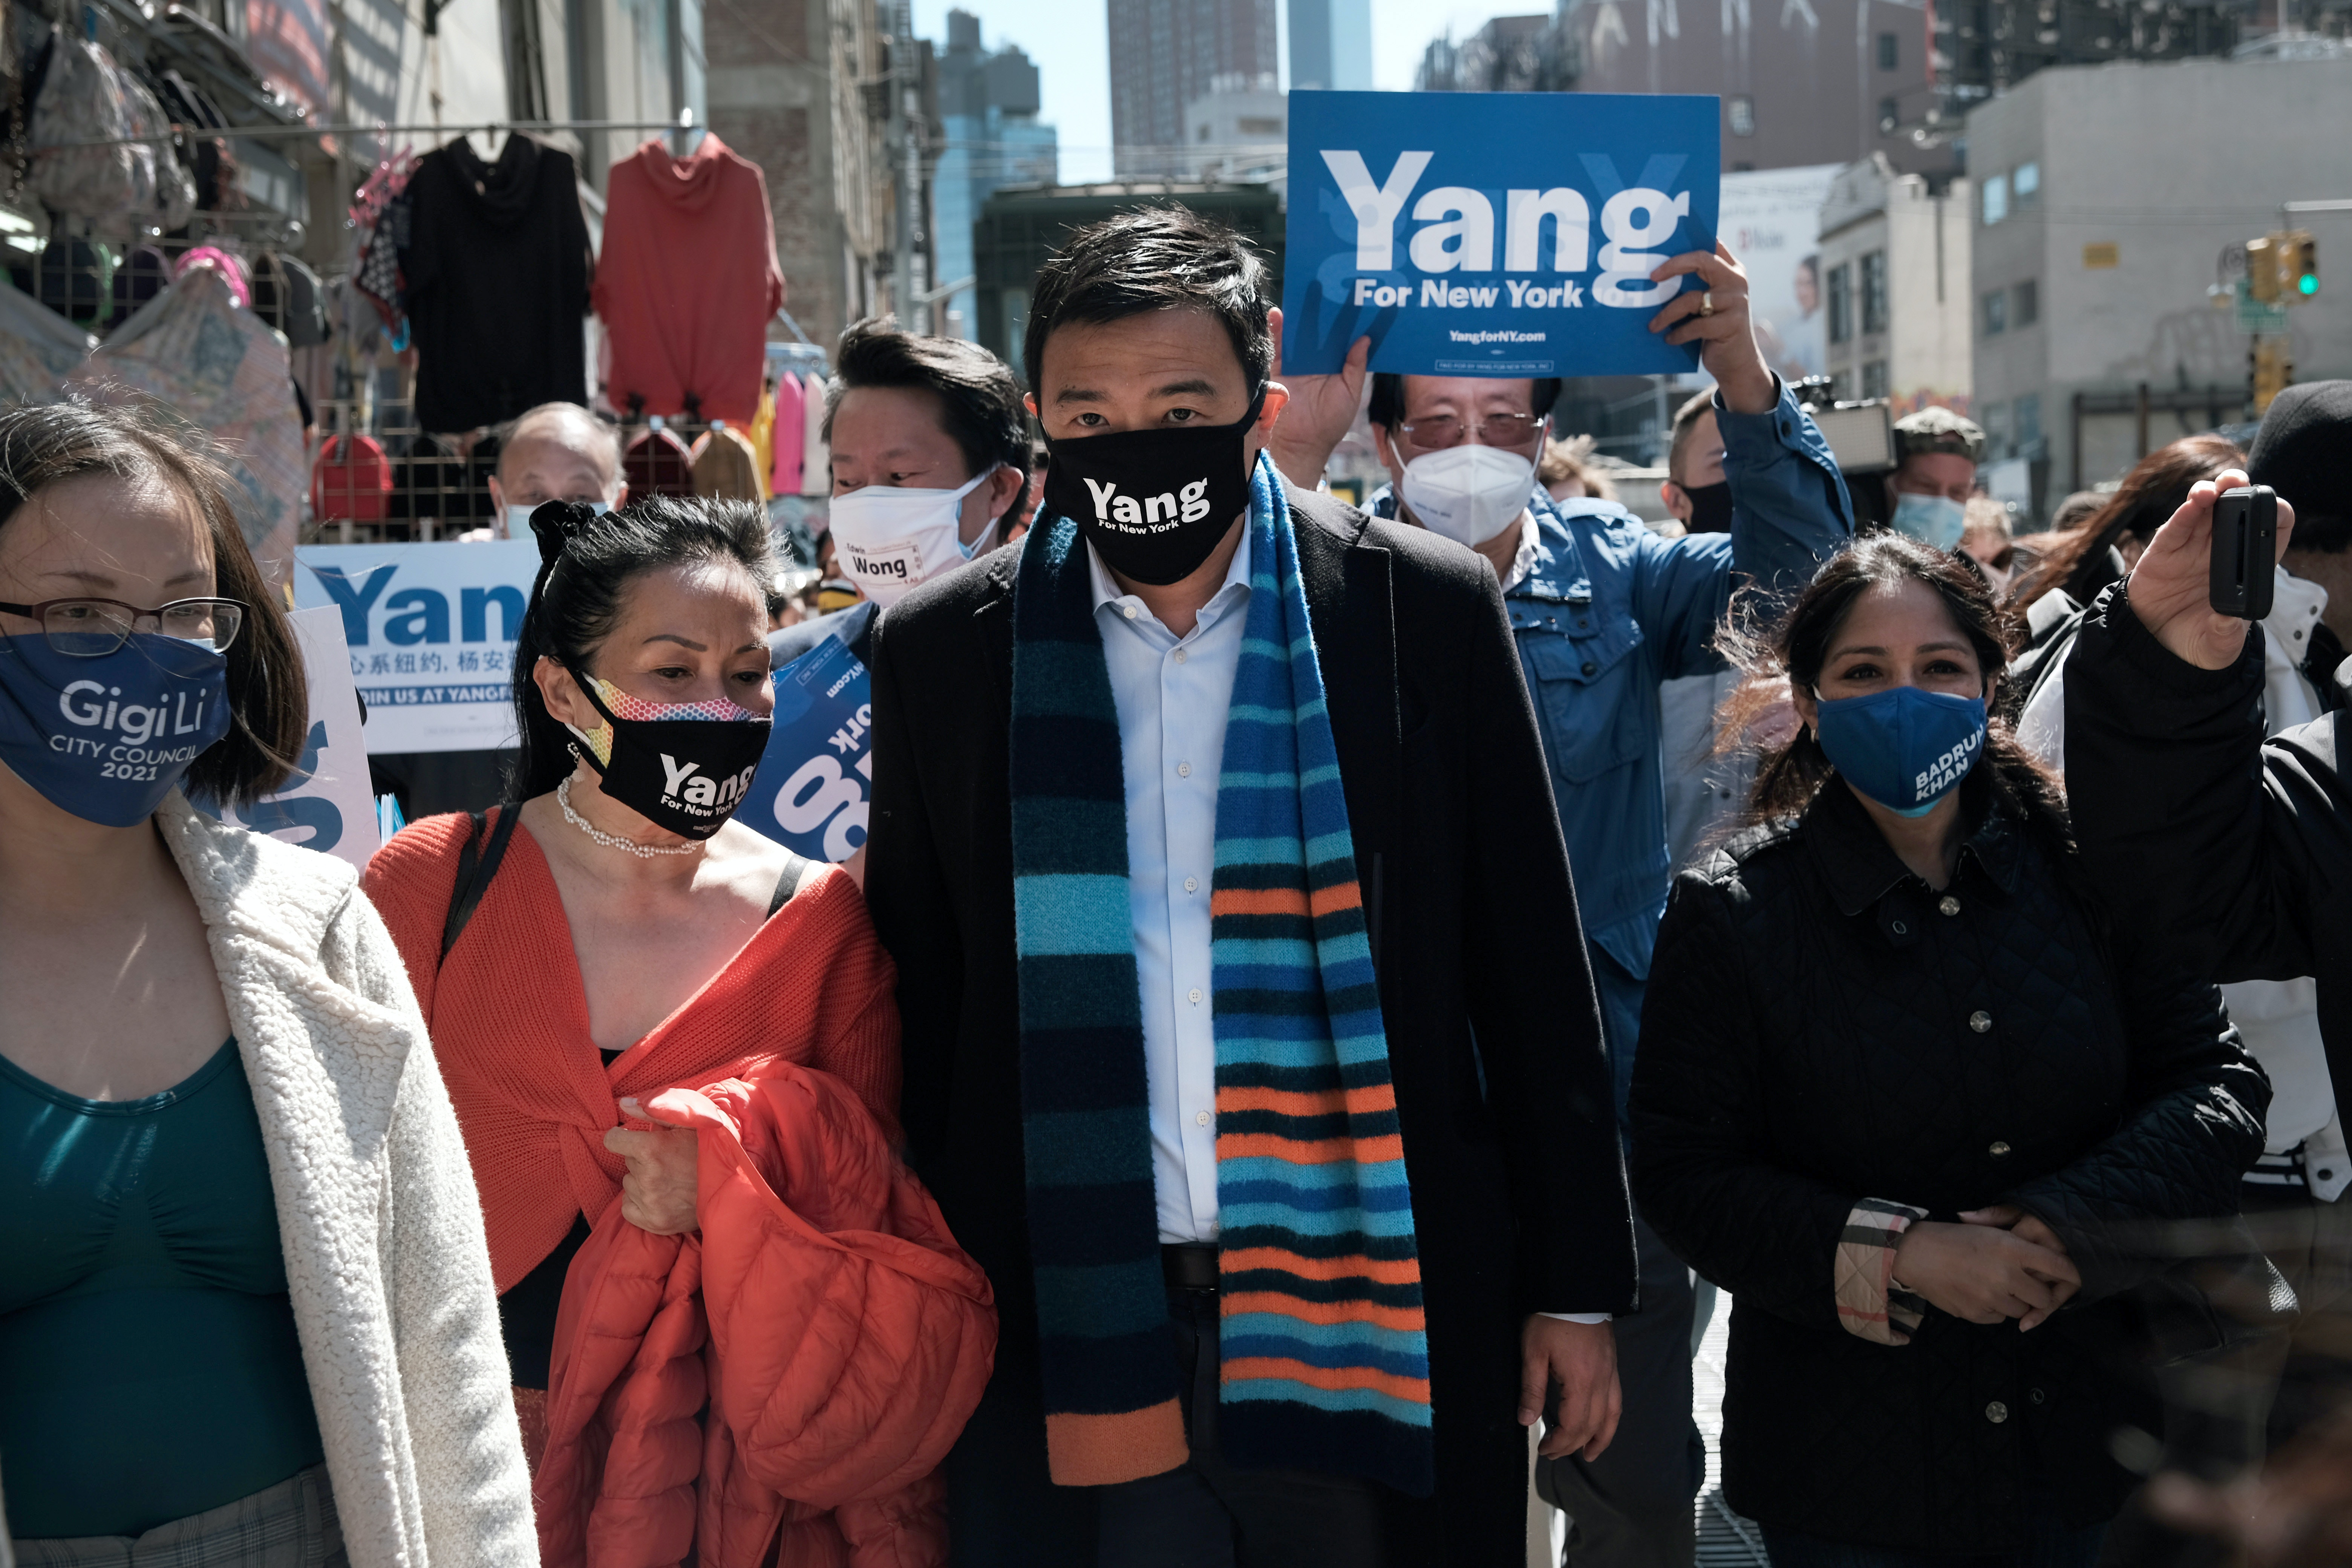 New York Mayoral Candidate Andrew Yang speaks to members of the media along Canal Street in Chinatown on April 05, 2021 in New York City.